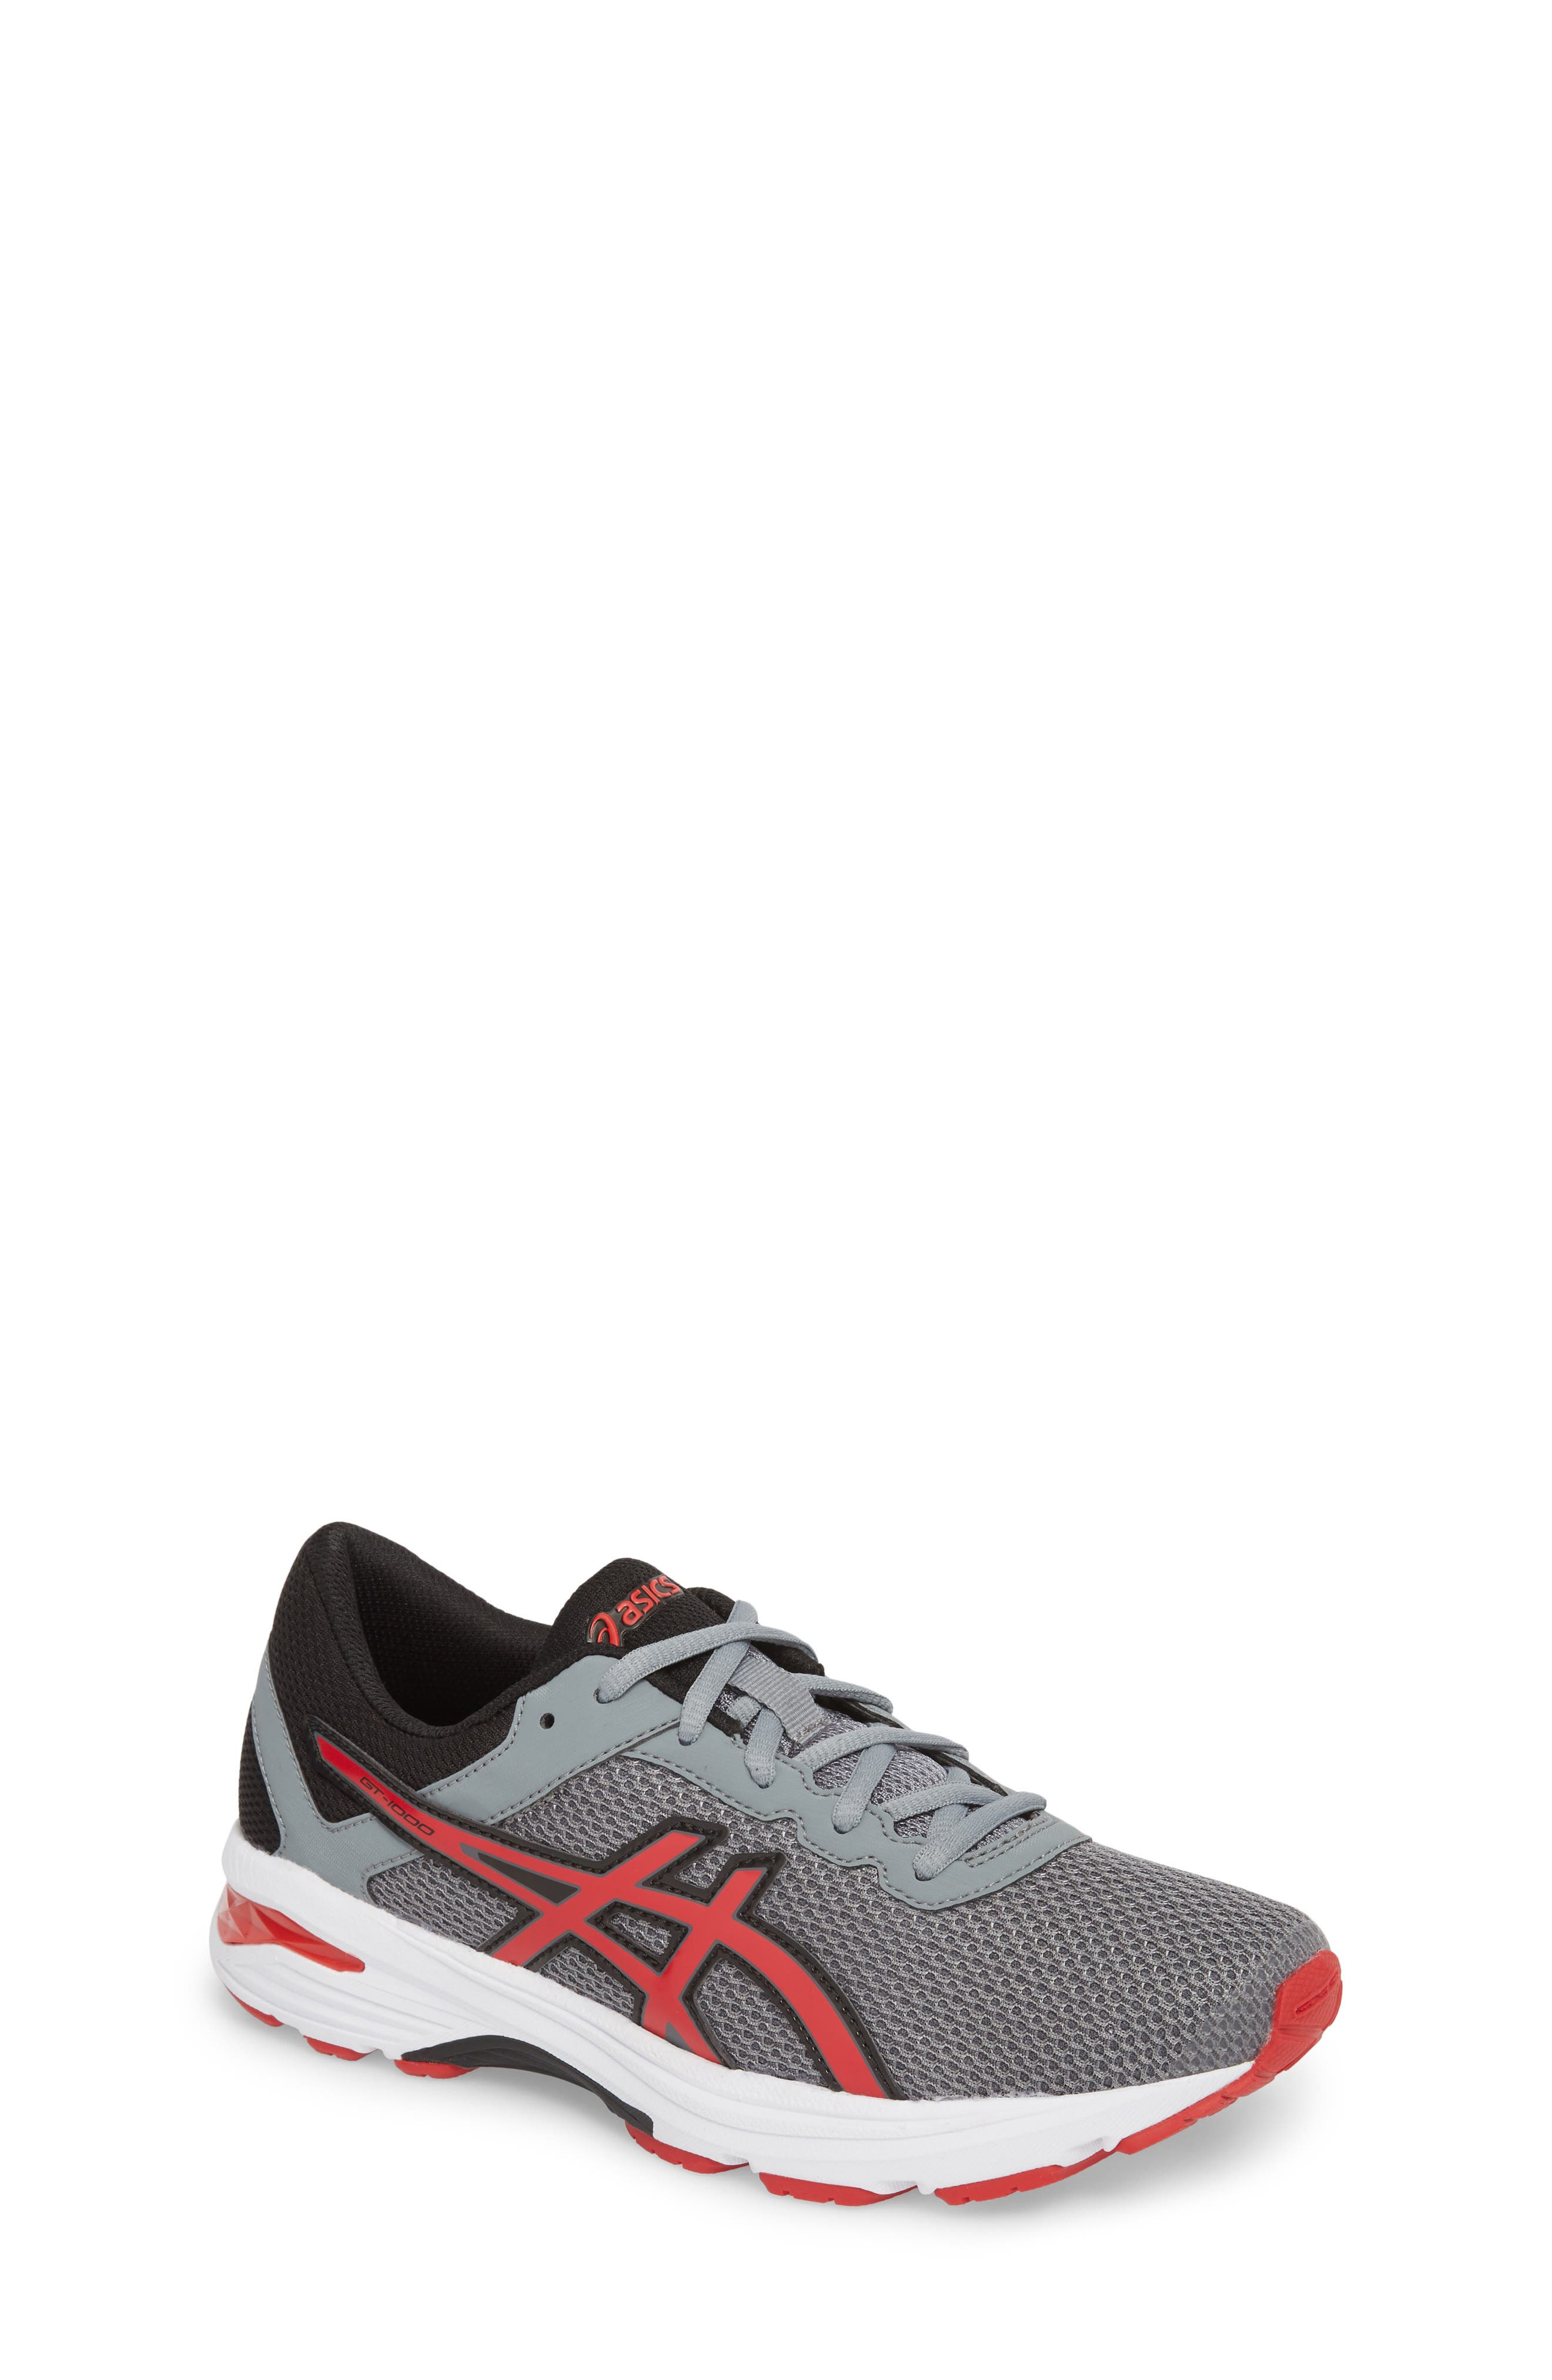 Asics GT-1000<sup>™</sup> 6 GS Sneaker,                         Main,                         color, Stone Grey/ Classic Red/ Black